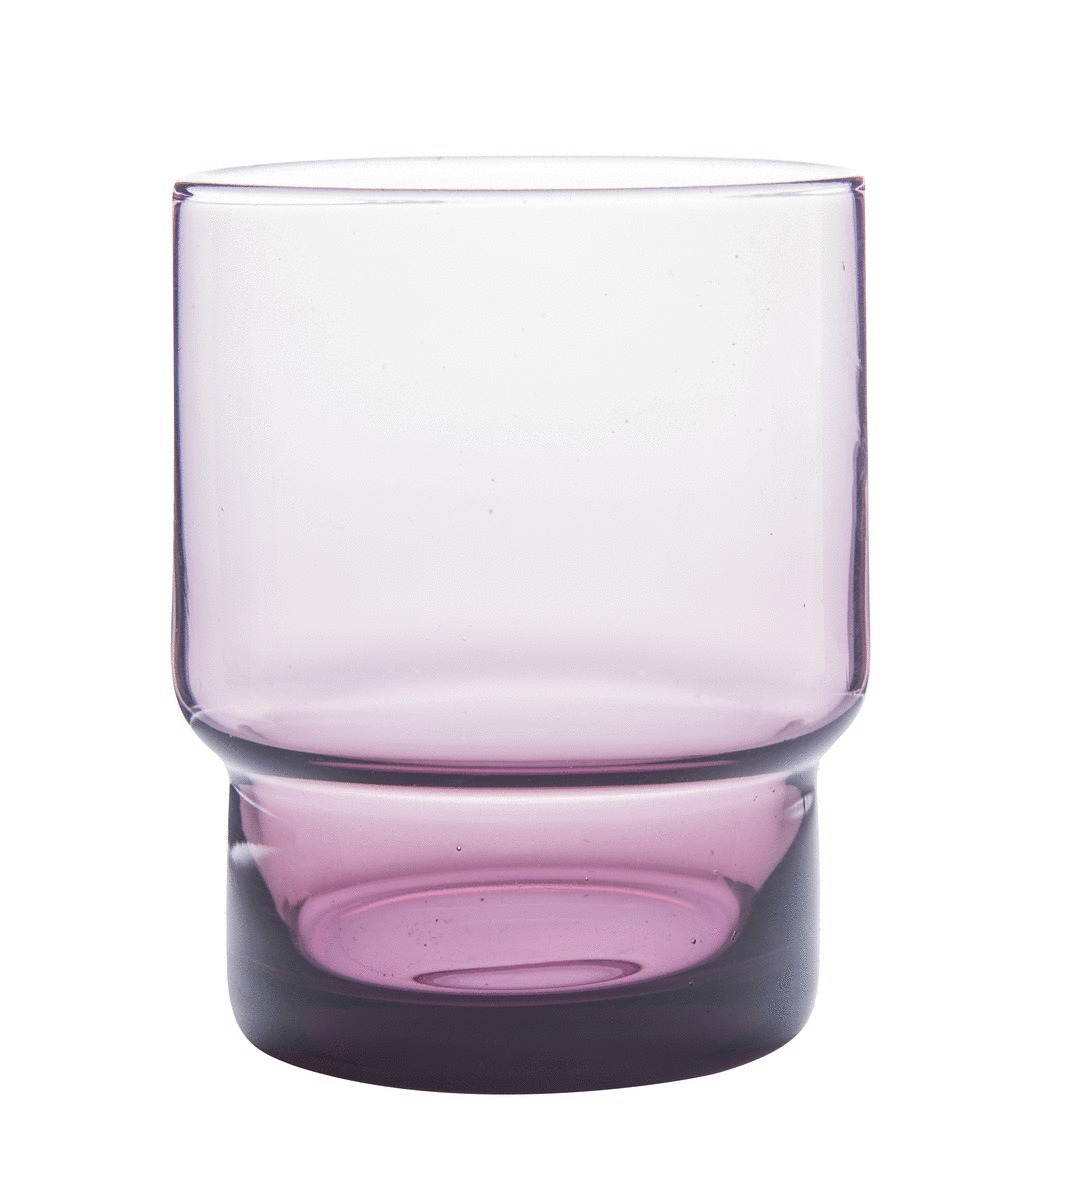 Gobelet forme basse parme 22 cl Artic Essentials Glassware